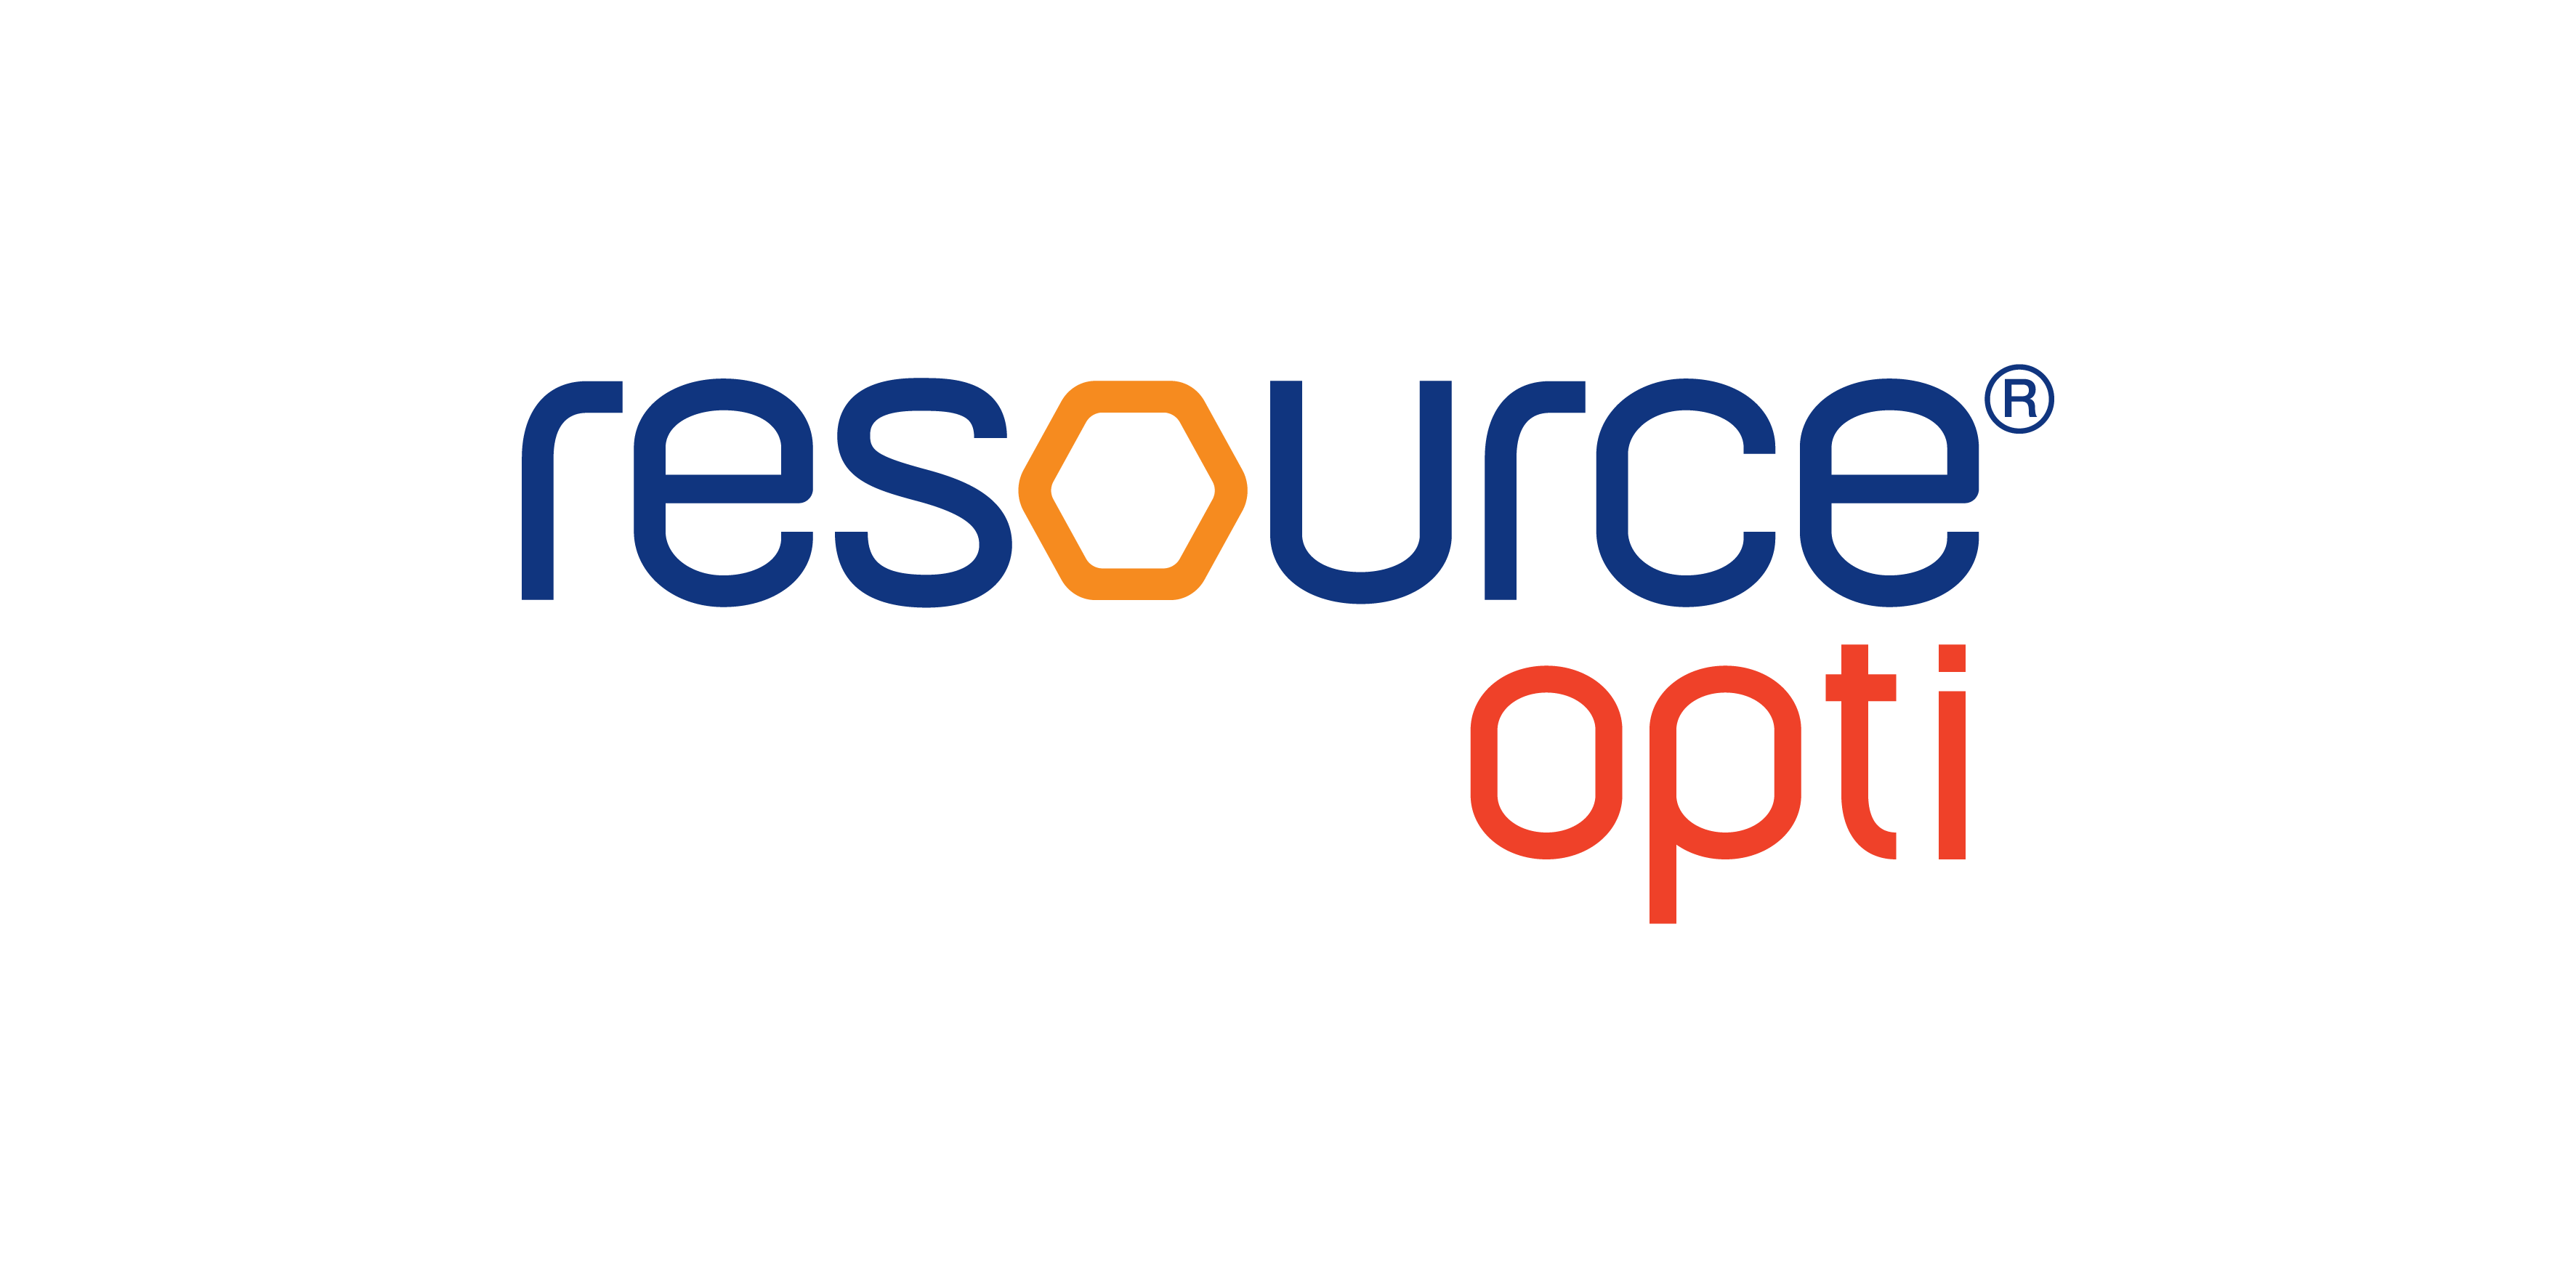 Resource Opti